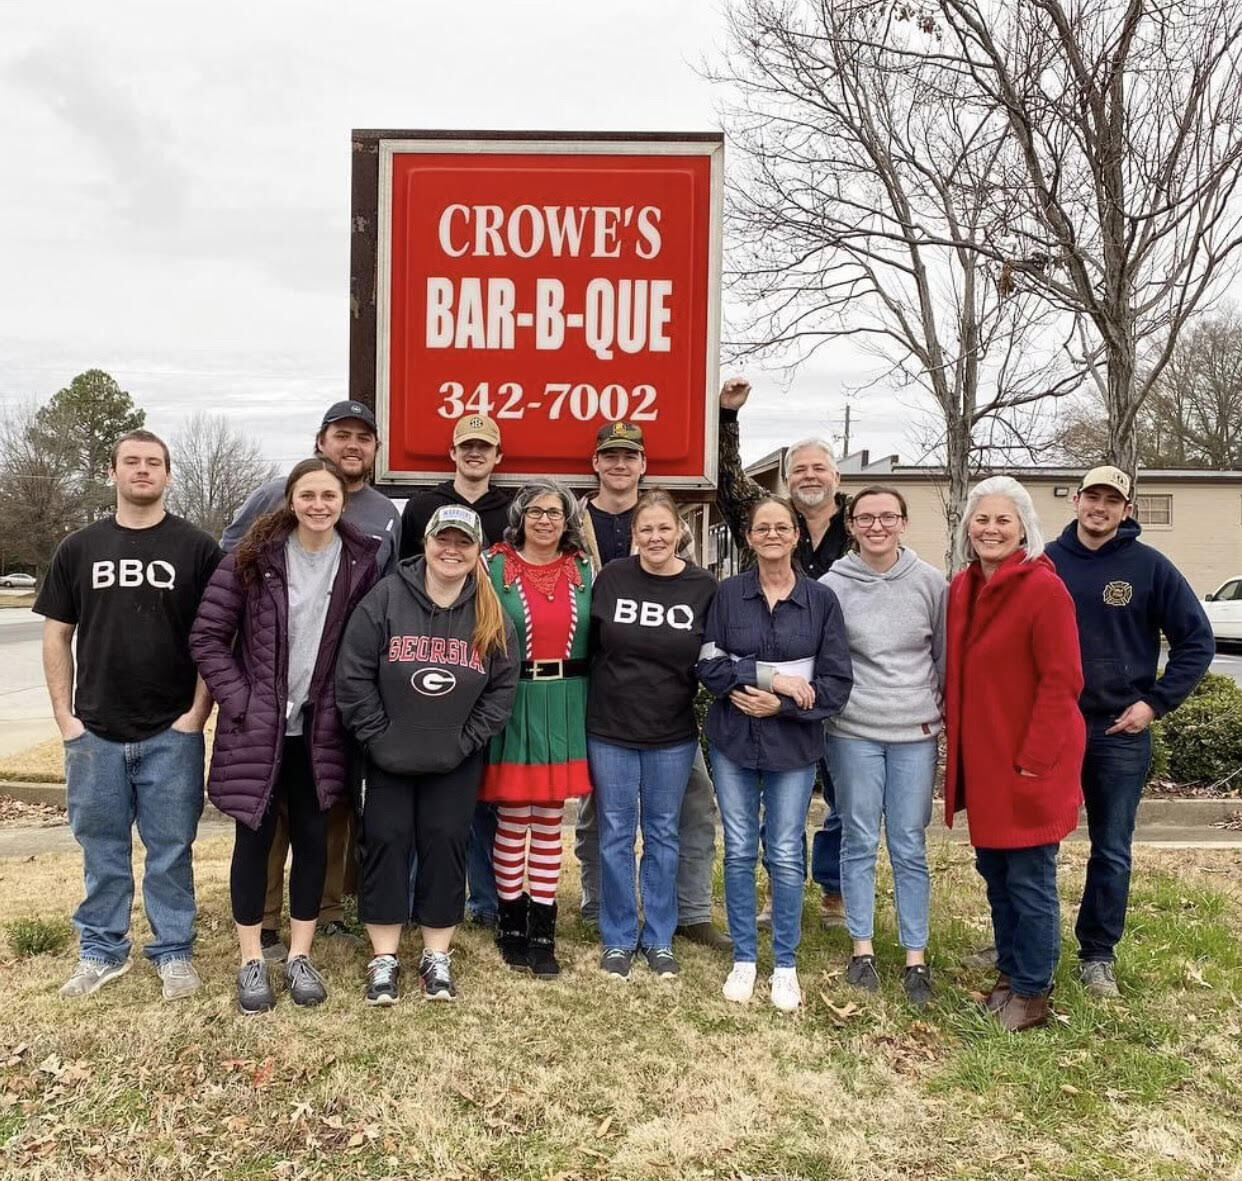 Crowe's BBQ Owners and employees